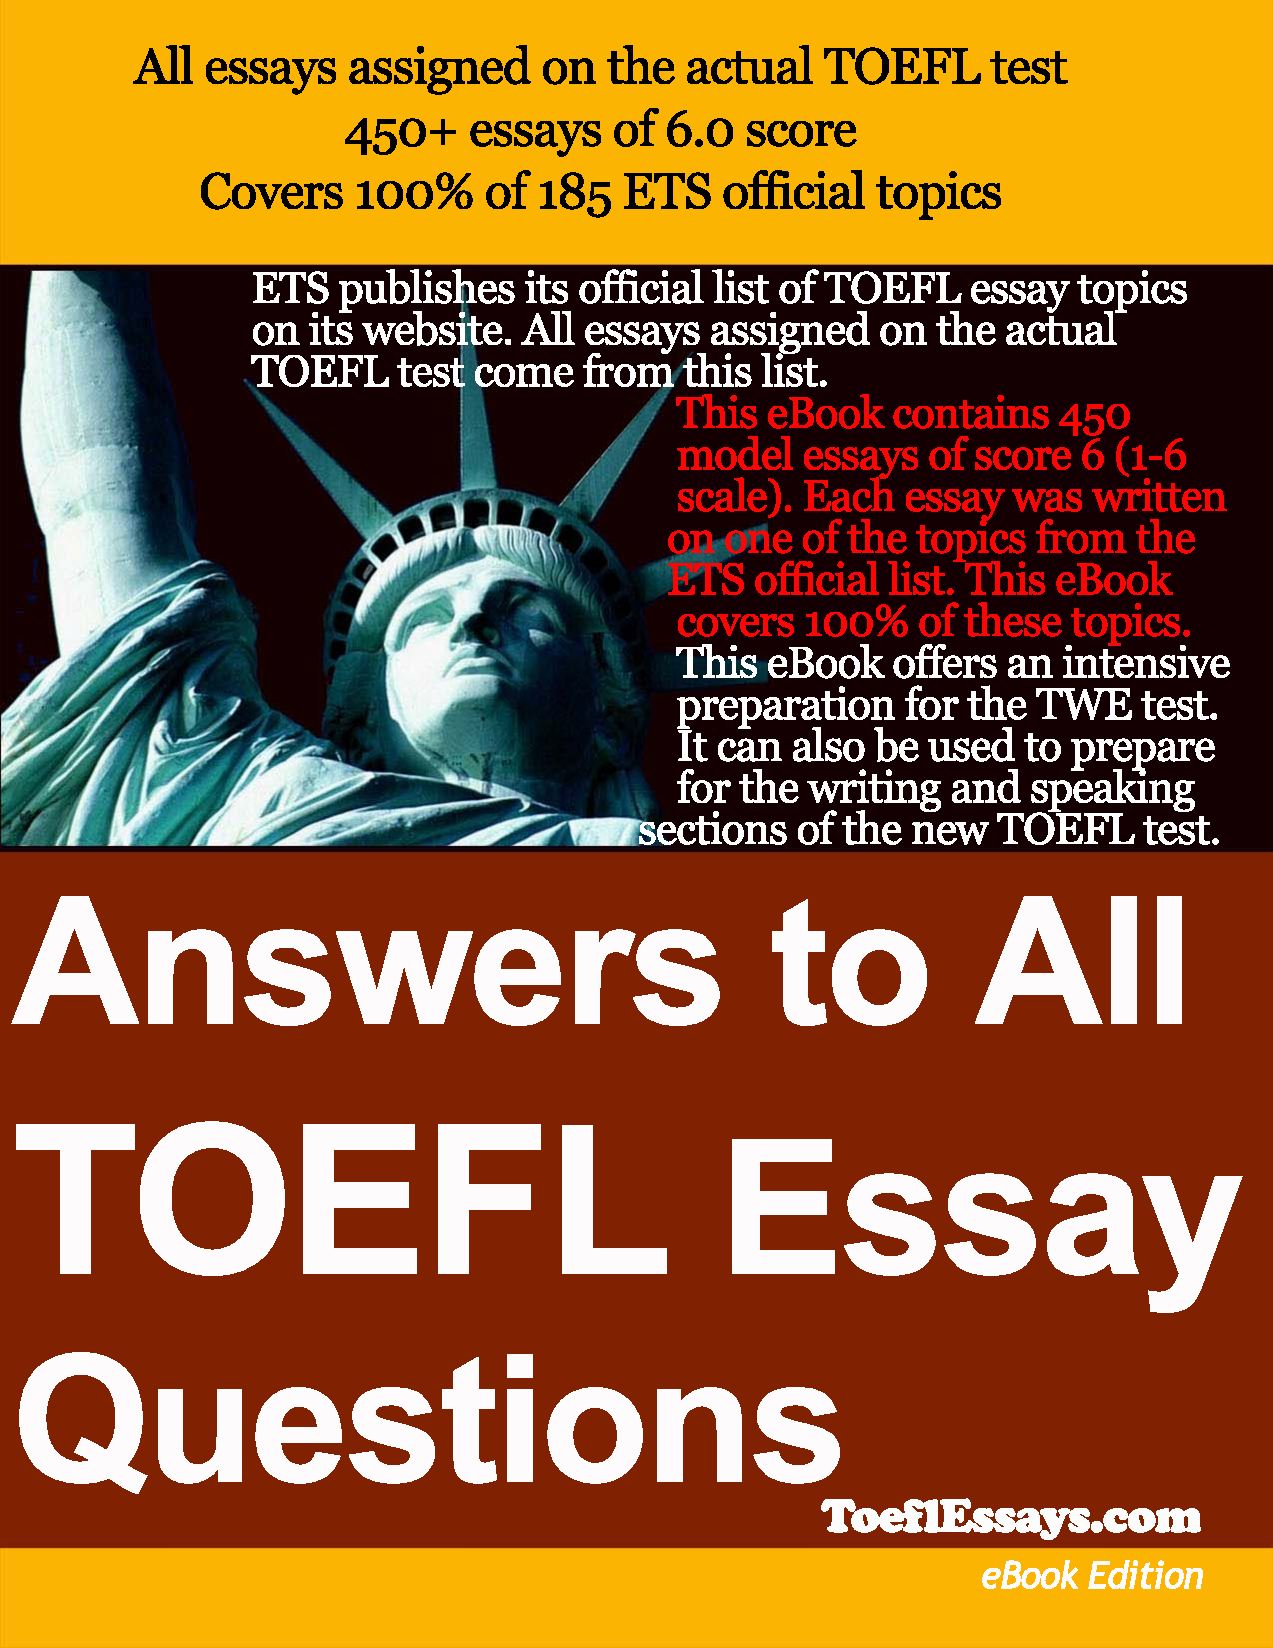 essays on liberty all essay topics all quiet on the western front  all essay topics all quiet on the western front essay topics answers to all toefl essay